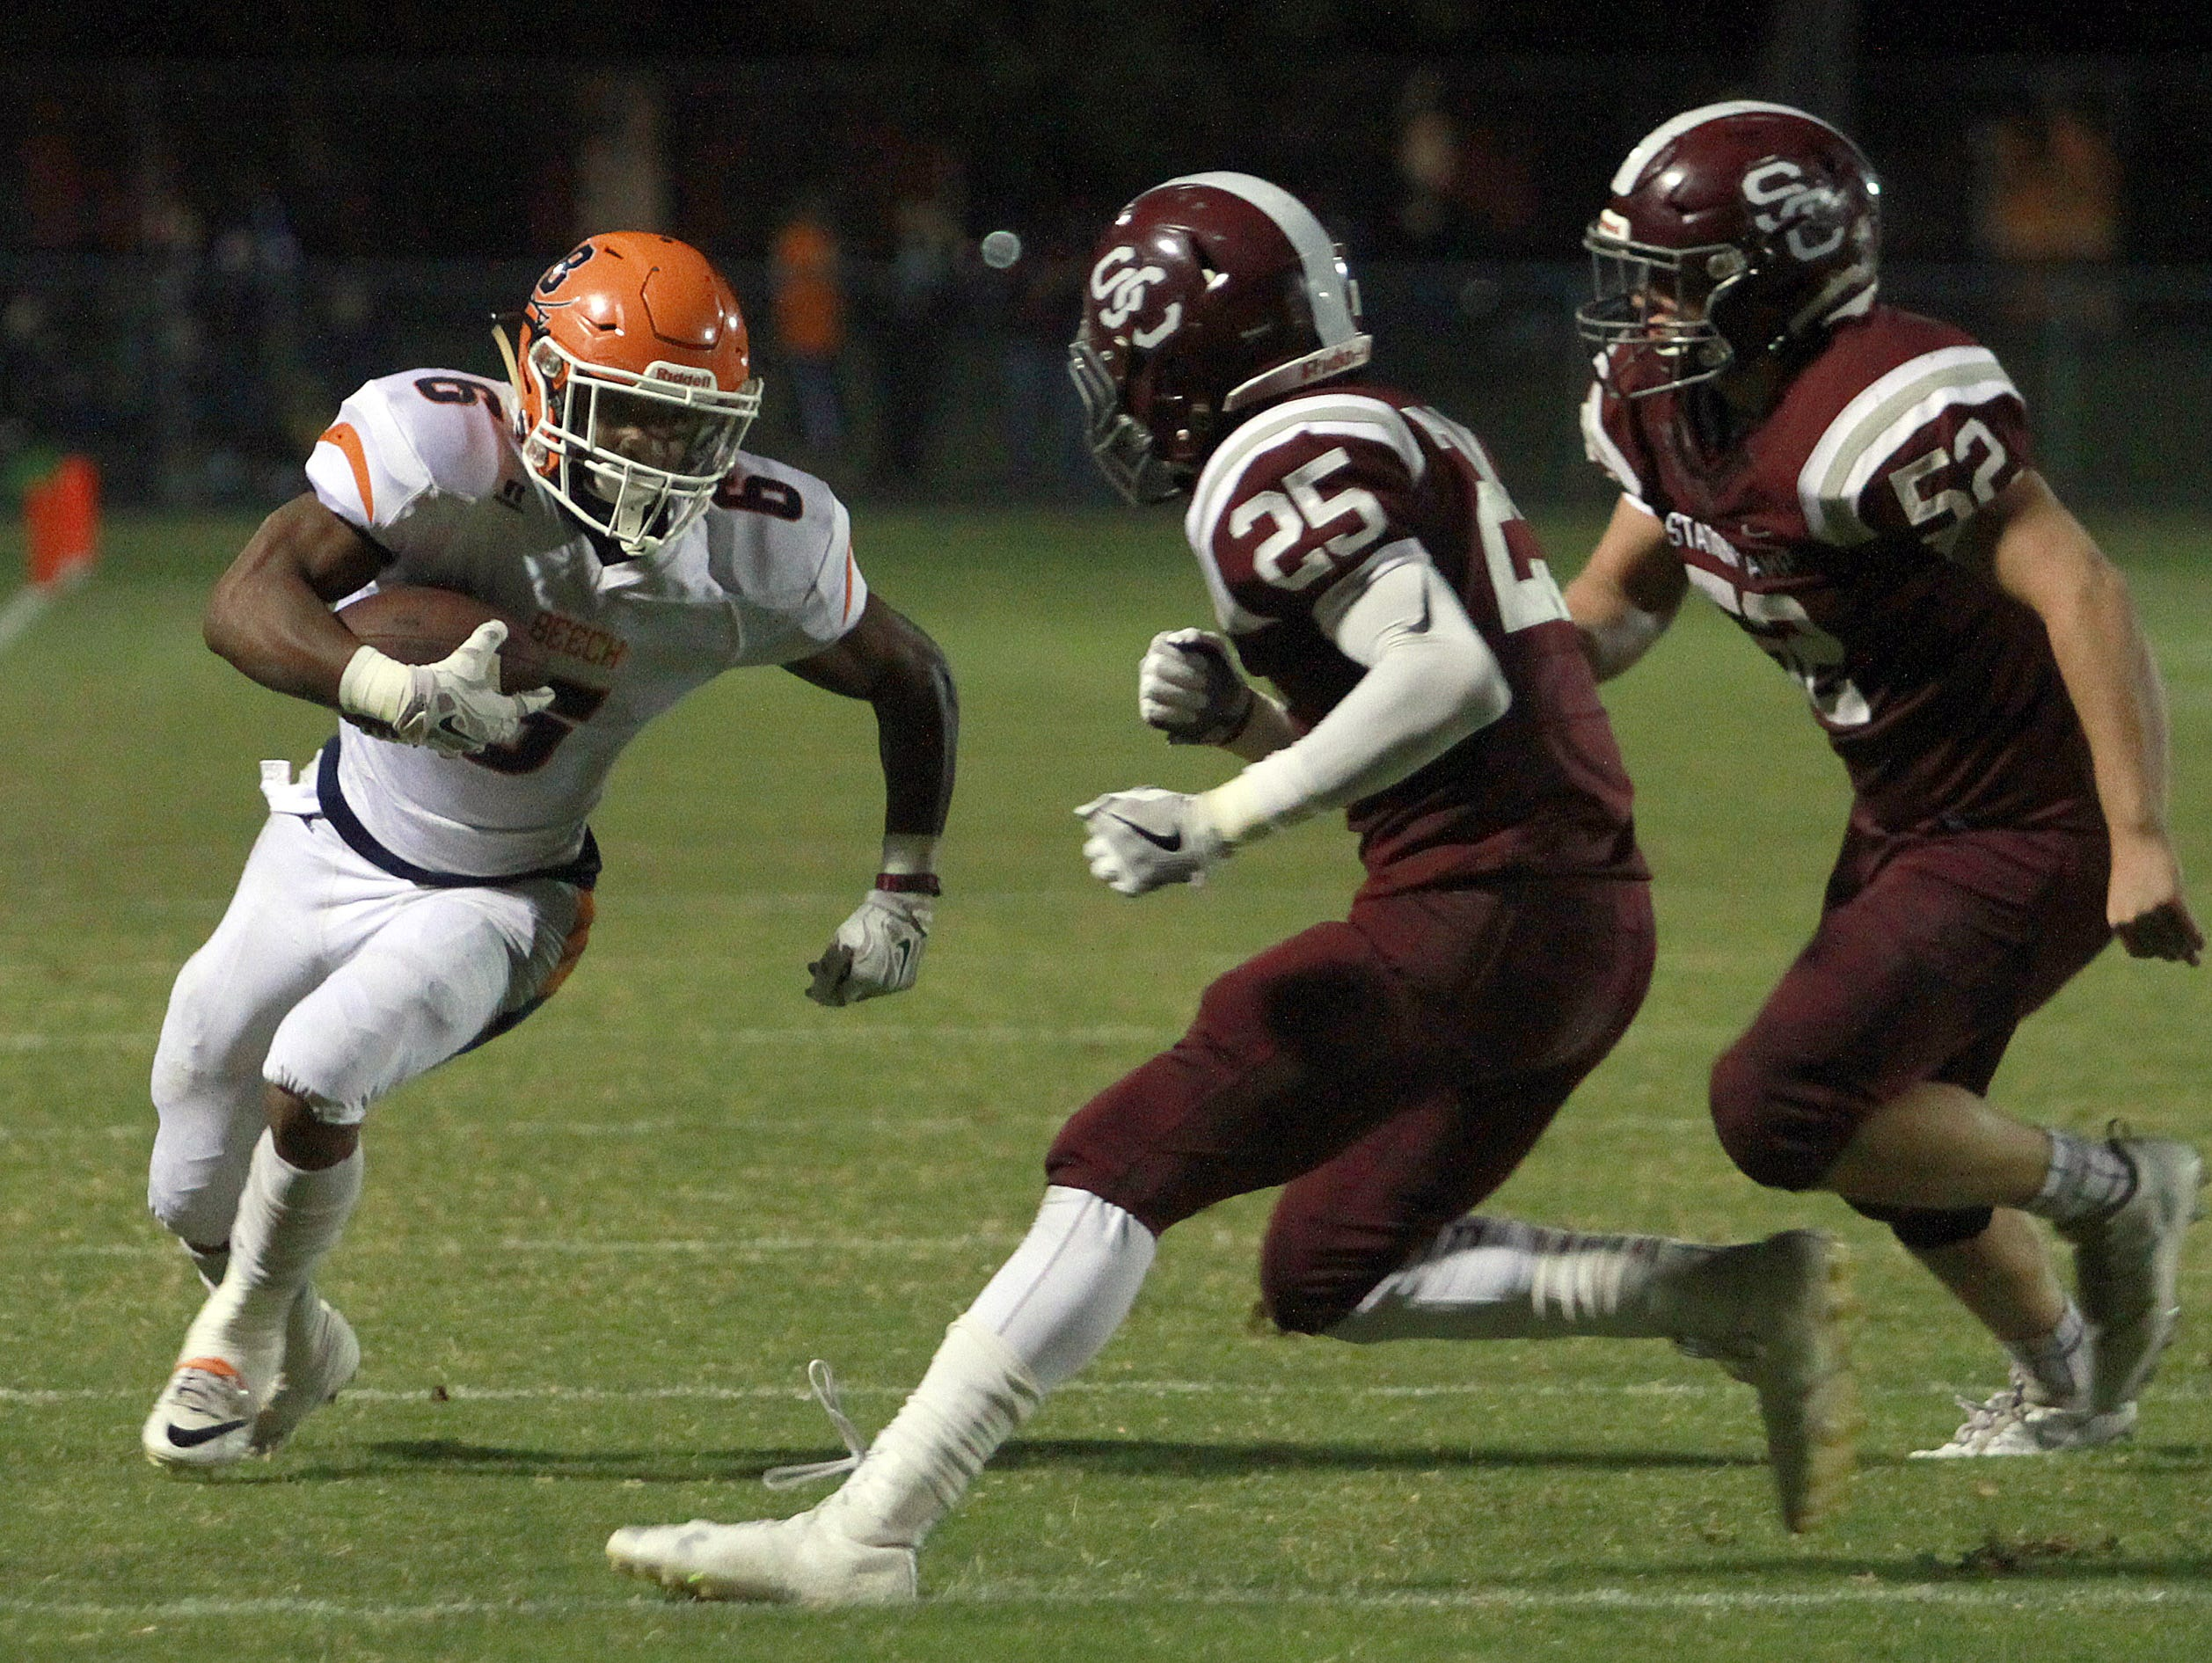 Beech's Alex Vanzant rushes as Station Camp's Shawn McKinley (25) and Simon Freeman force him to the sideline and short of the goal line during their game earlier this season. Beech is ranked ninth in this week's Class 5A poll and hosts Hunters Lane on Friday.